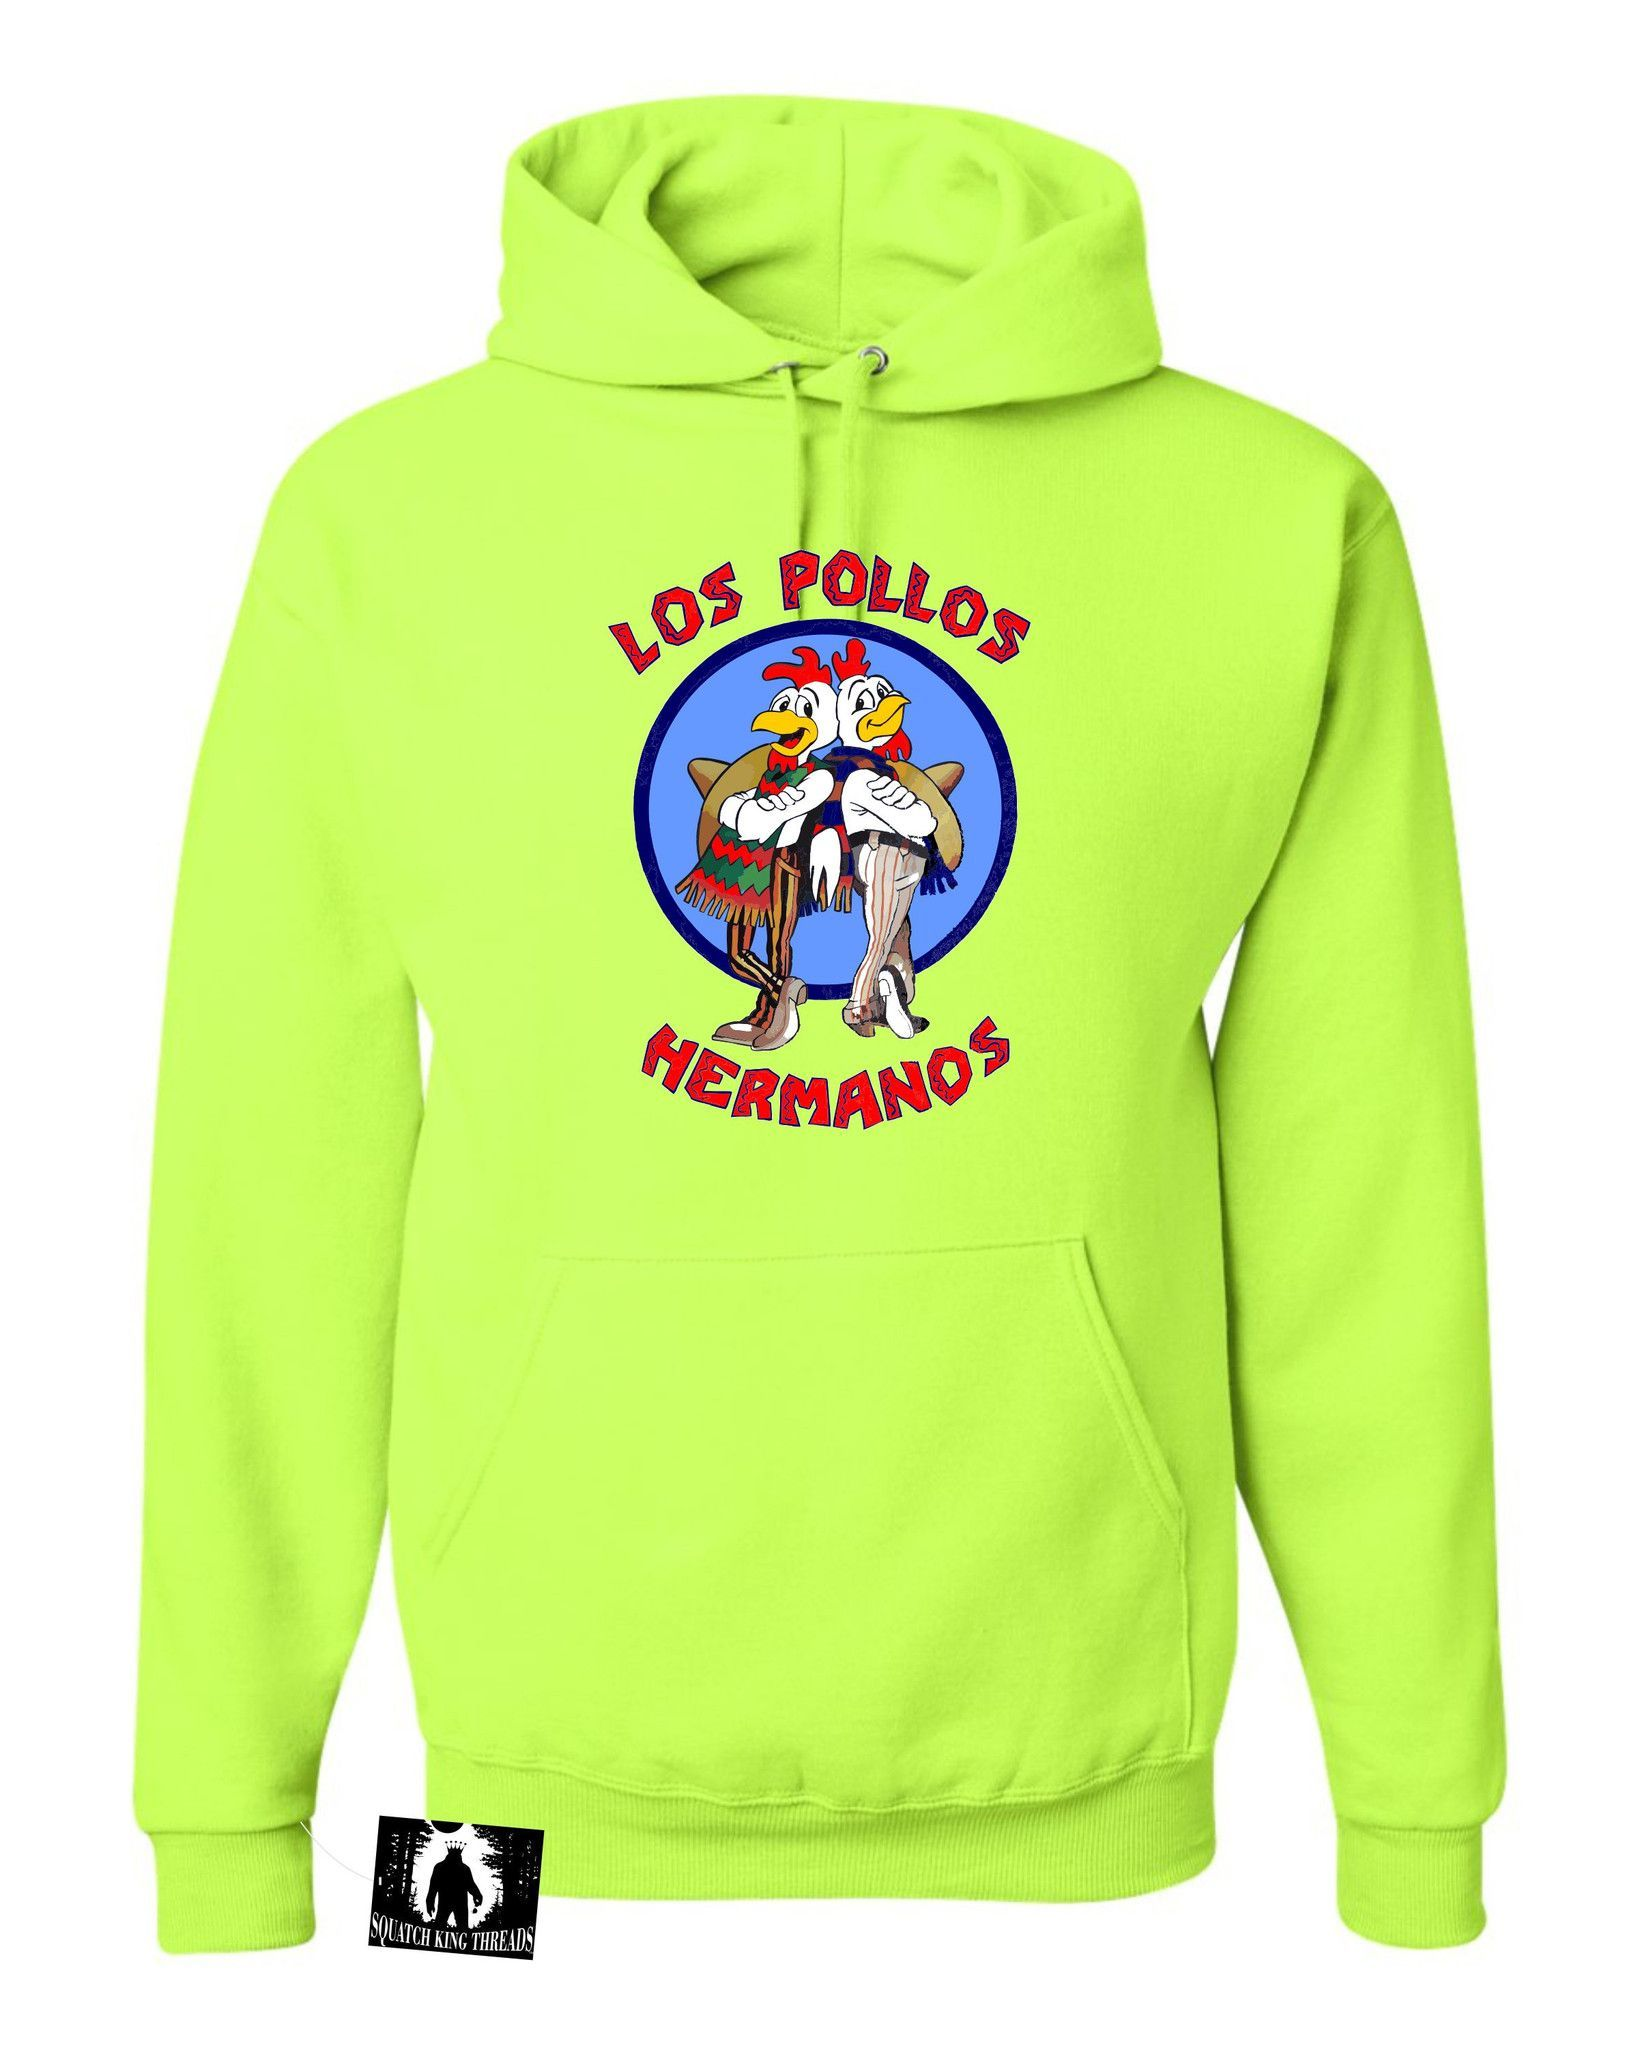 Adult Los Pollos Hermanos Breaking Bad Inspired Hooded Sweatshirt Hoodie